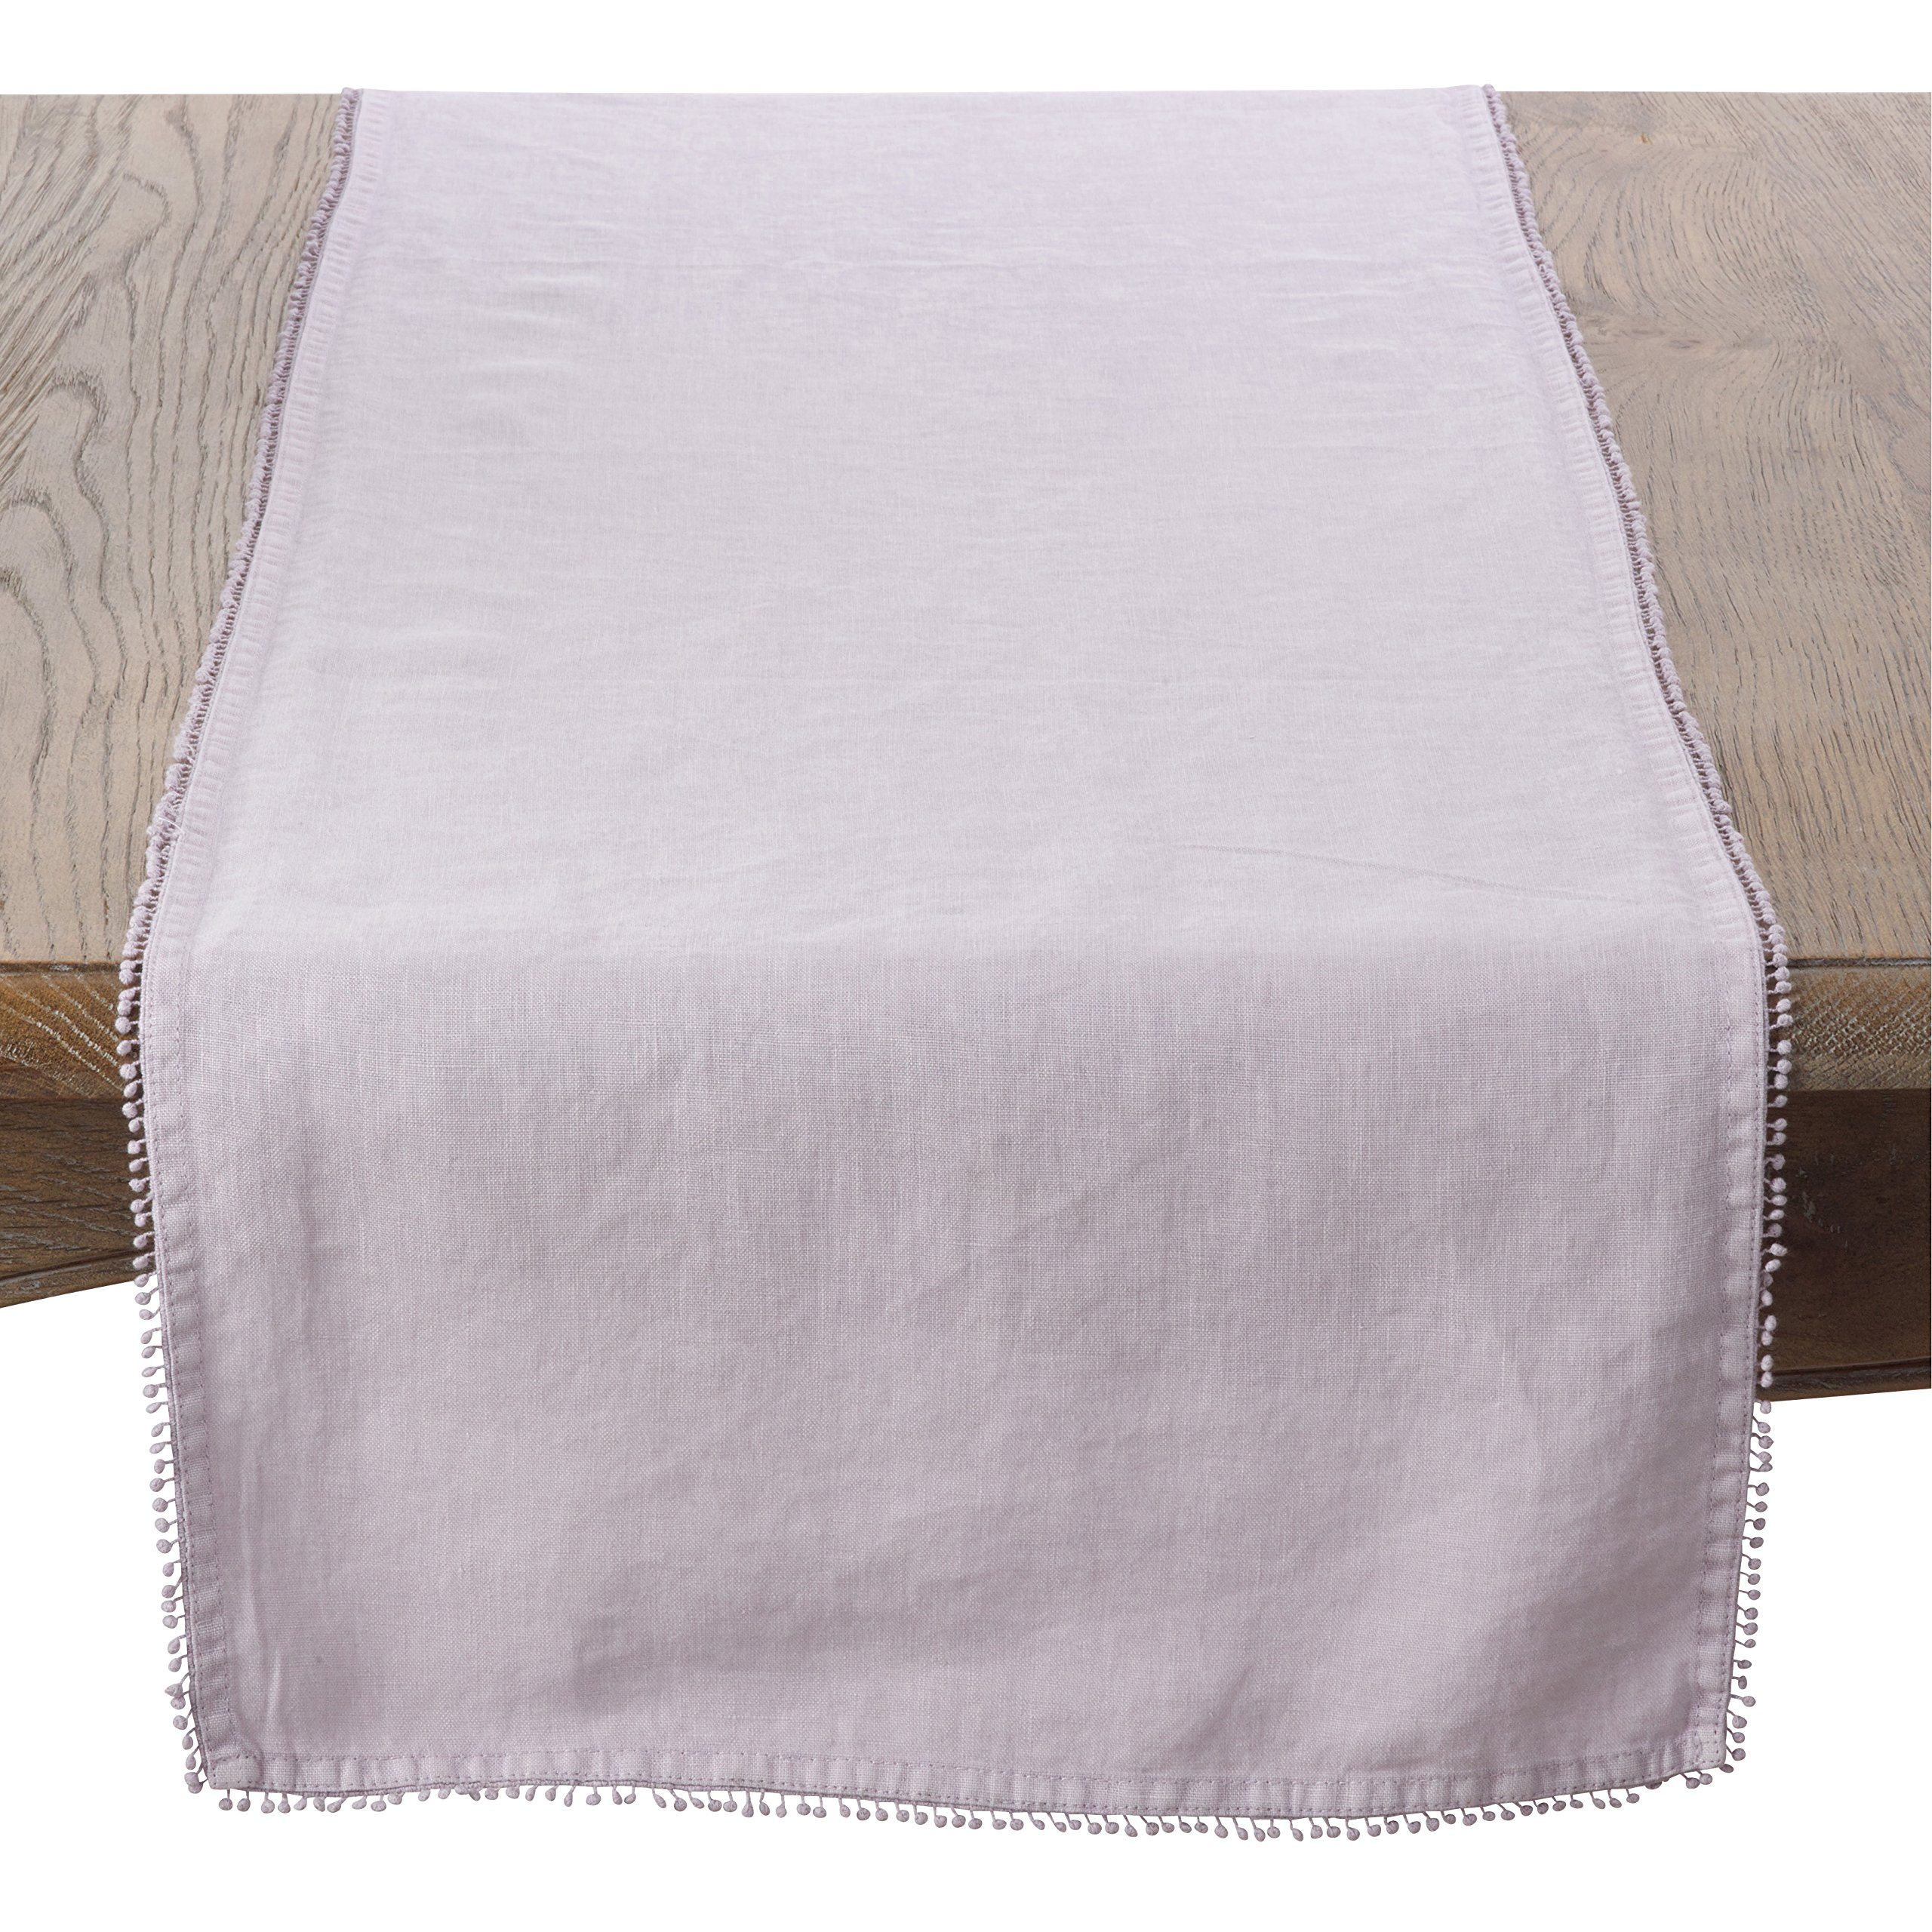 SARO LIFESTYLE Pomponin Collection 100% Linen Table Runner with Pompom Edges, 16'' x 72'', Lavender